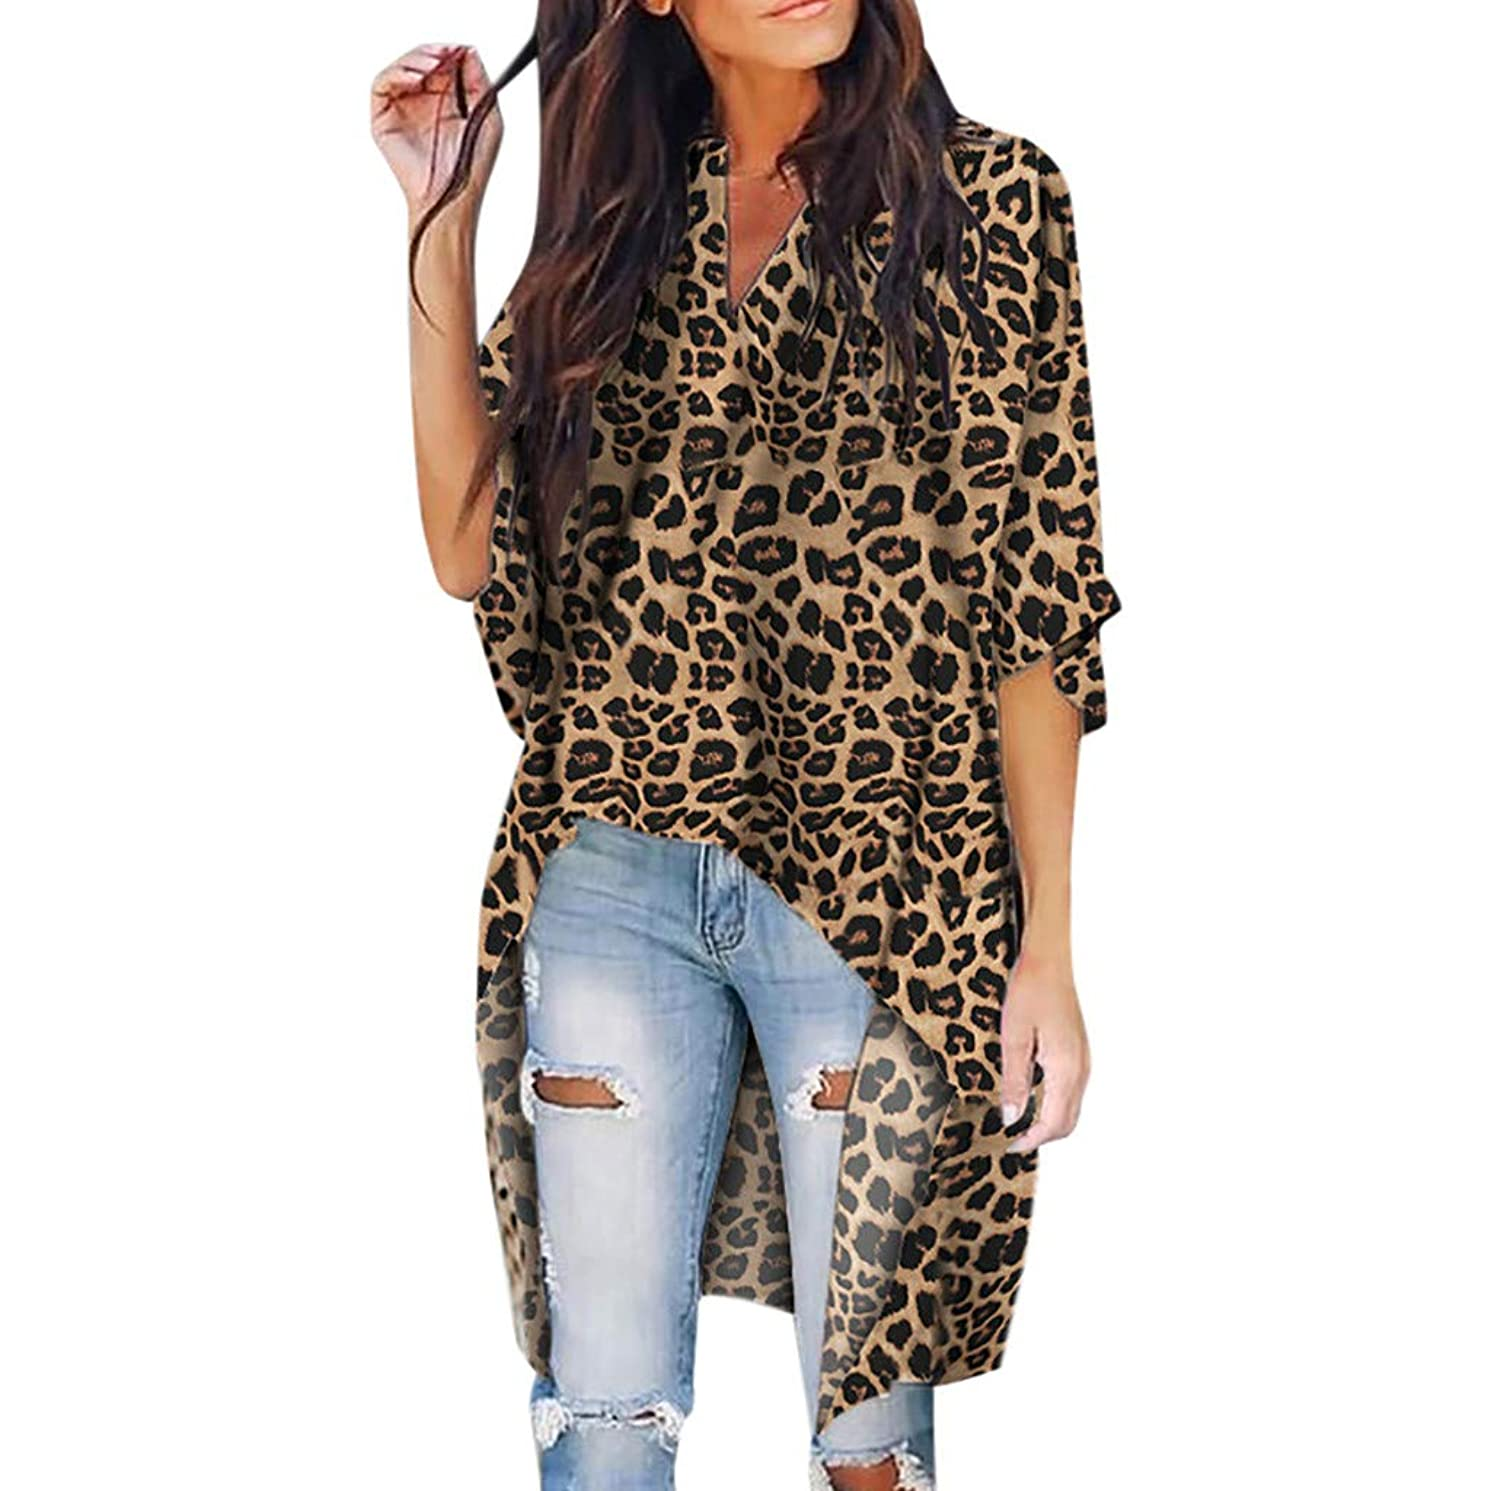 Women Leopard Loose Top, Lady V-Neck Irregular Short Sleeve T-Shirt Casual Batwing Sleeve Outdoor Blouses (XL, Brown)